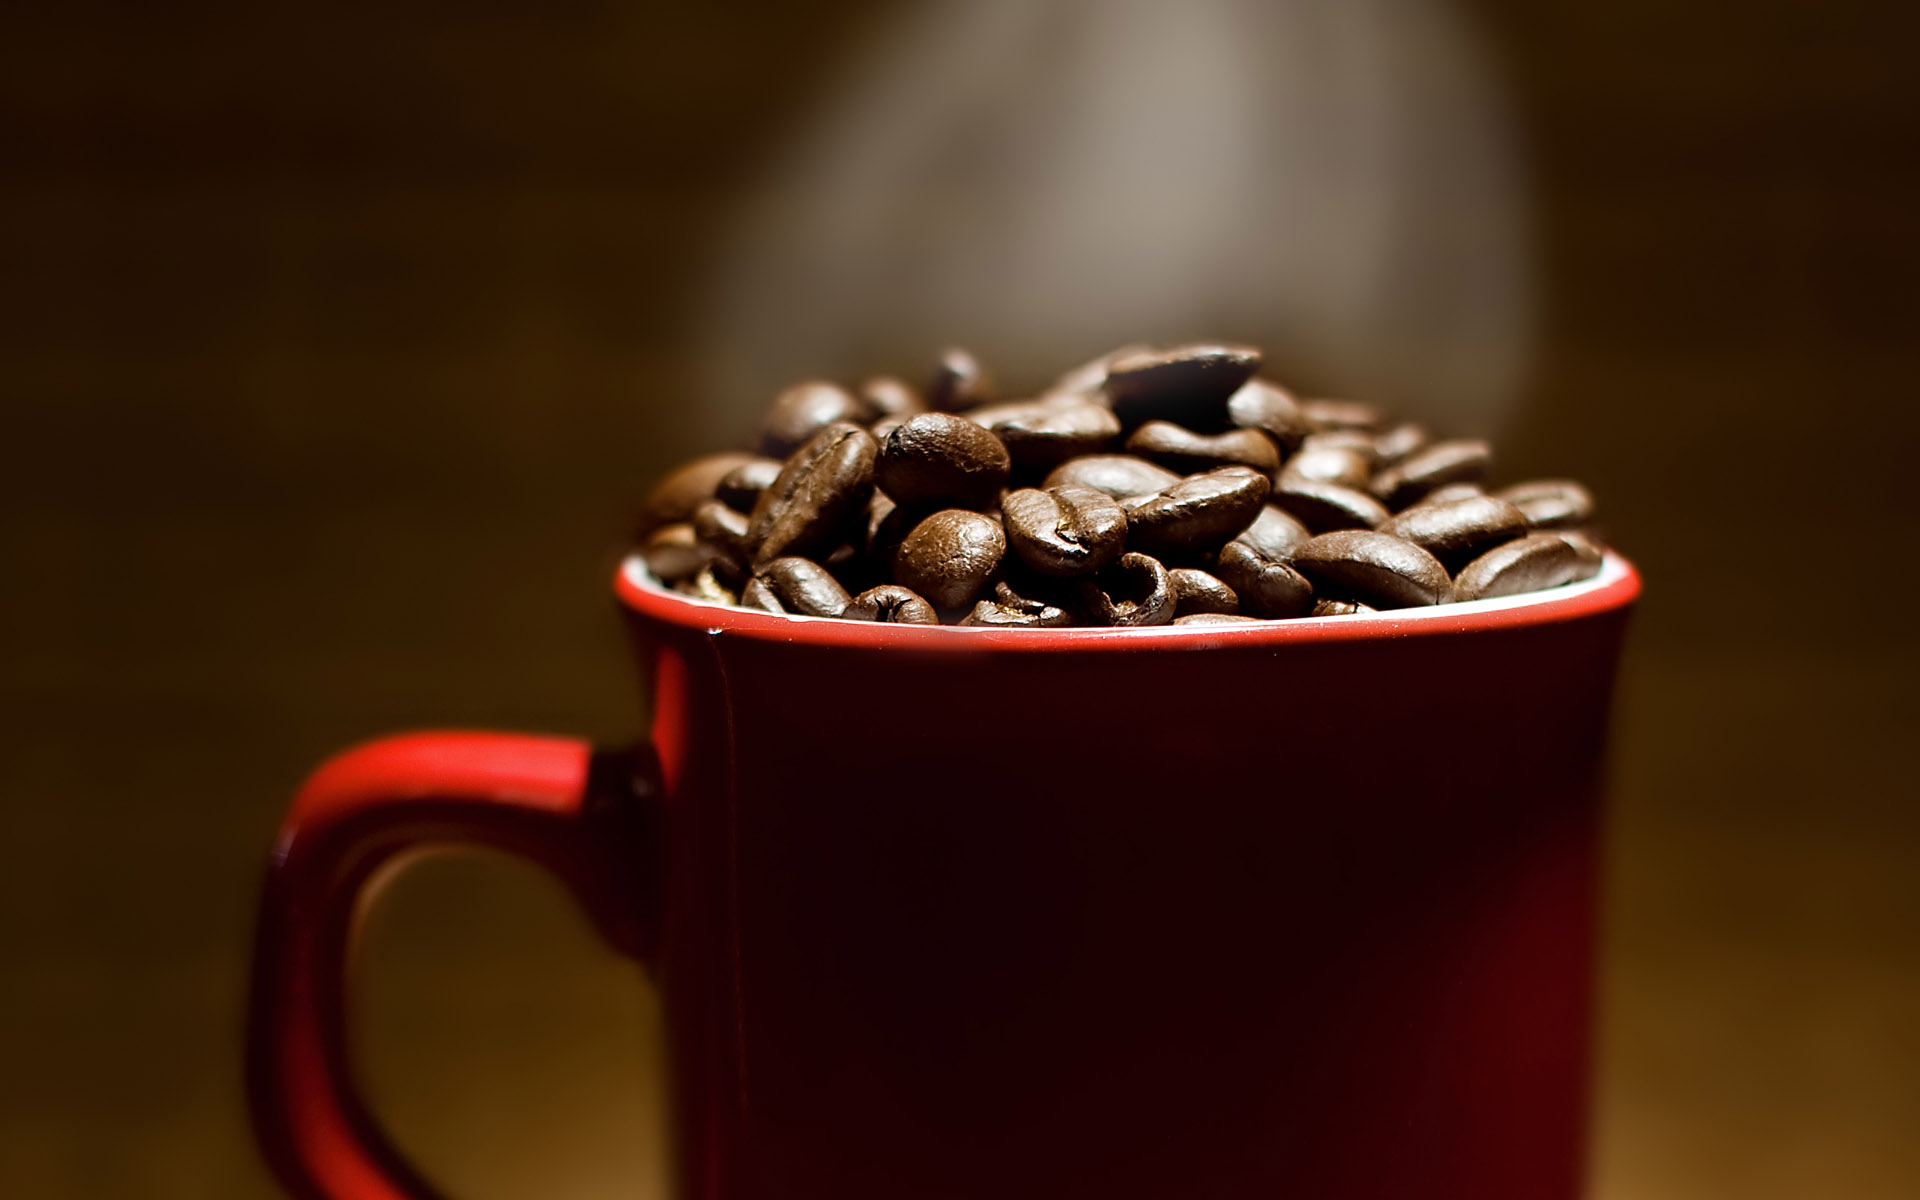 Coffee and coffee beans close-up 16376